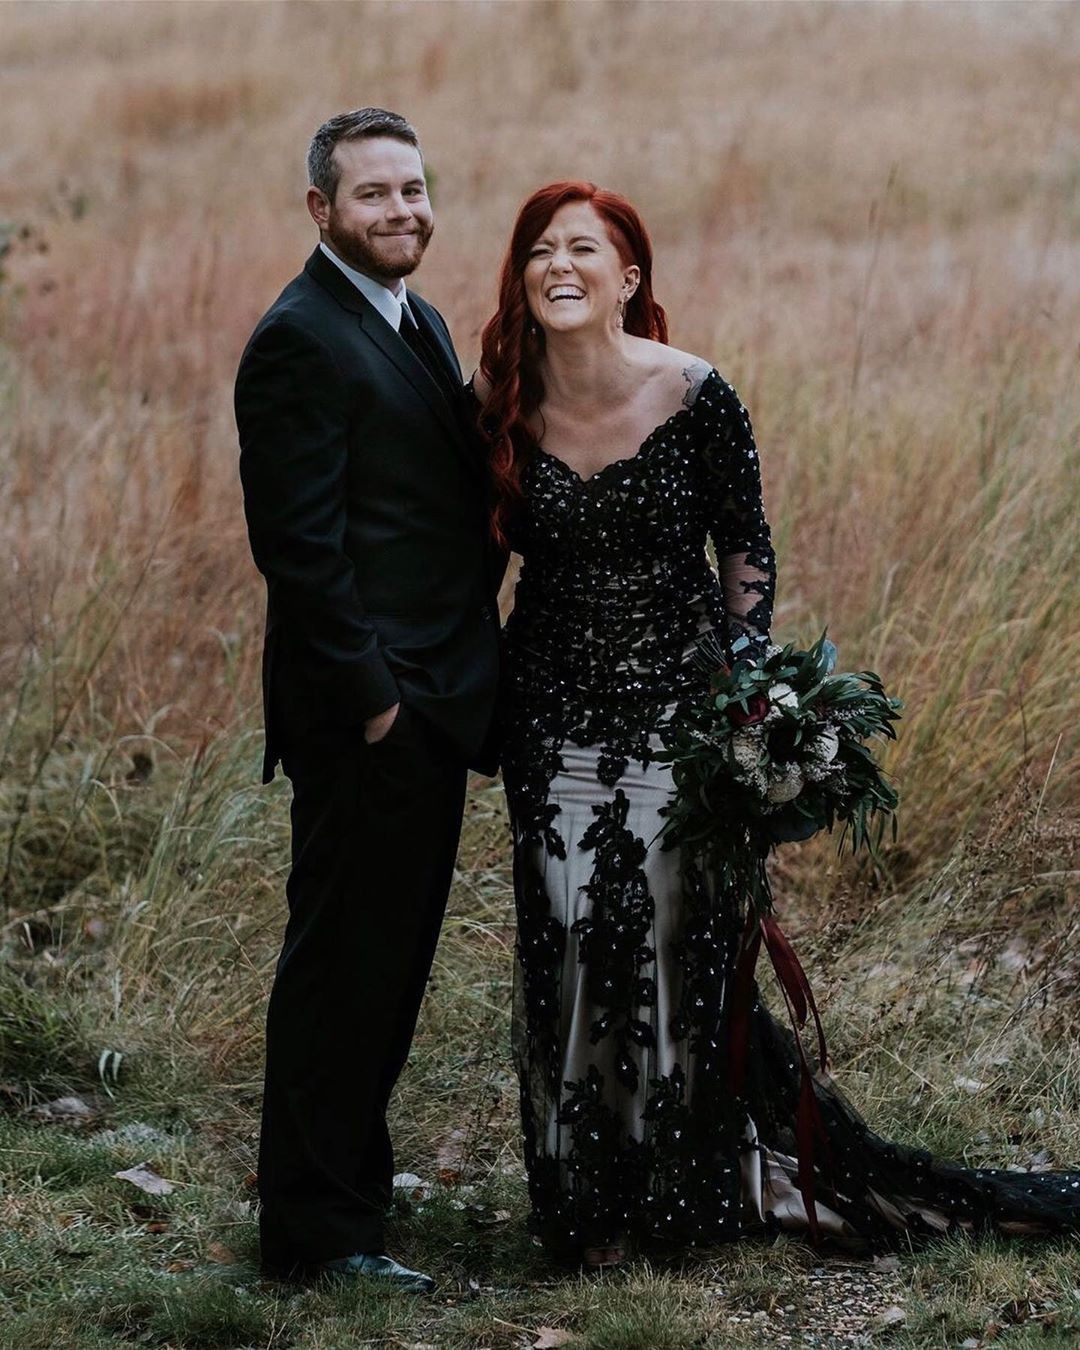 How stinkin' cute is @amez_rogers in her custom black gown? Would